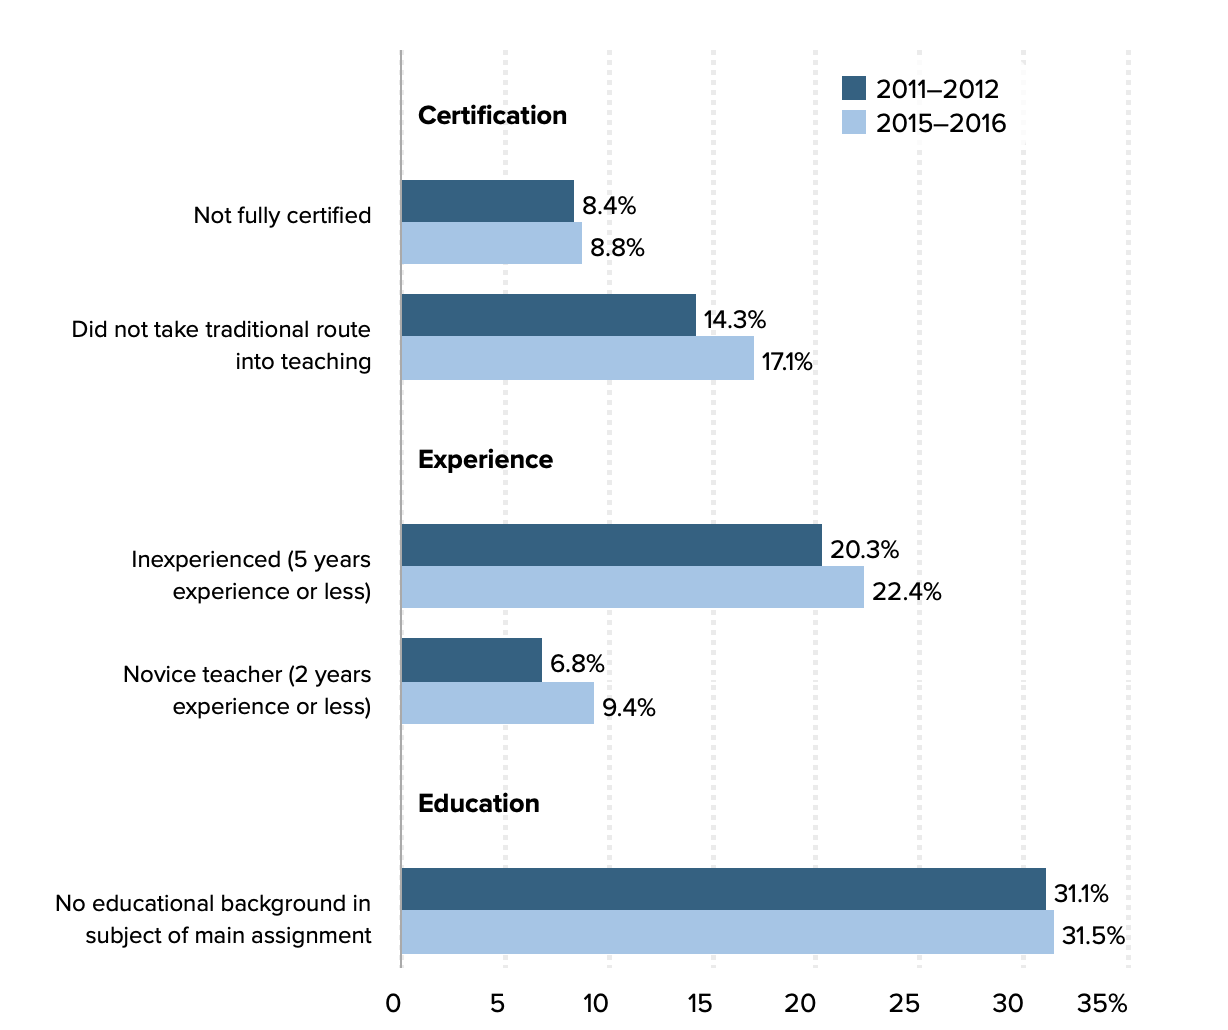 Change over time in teacher credentials